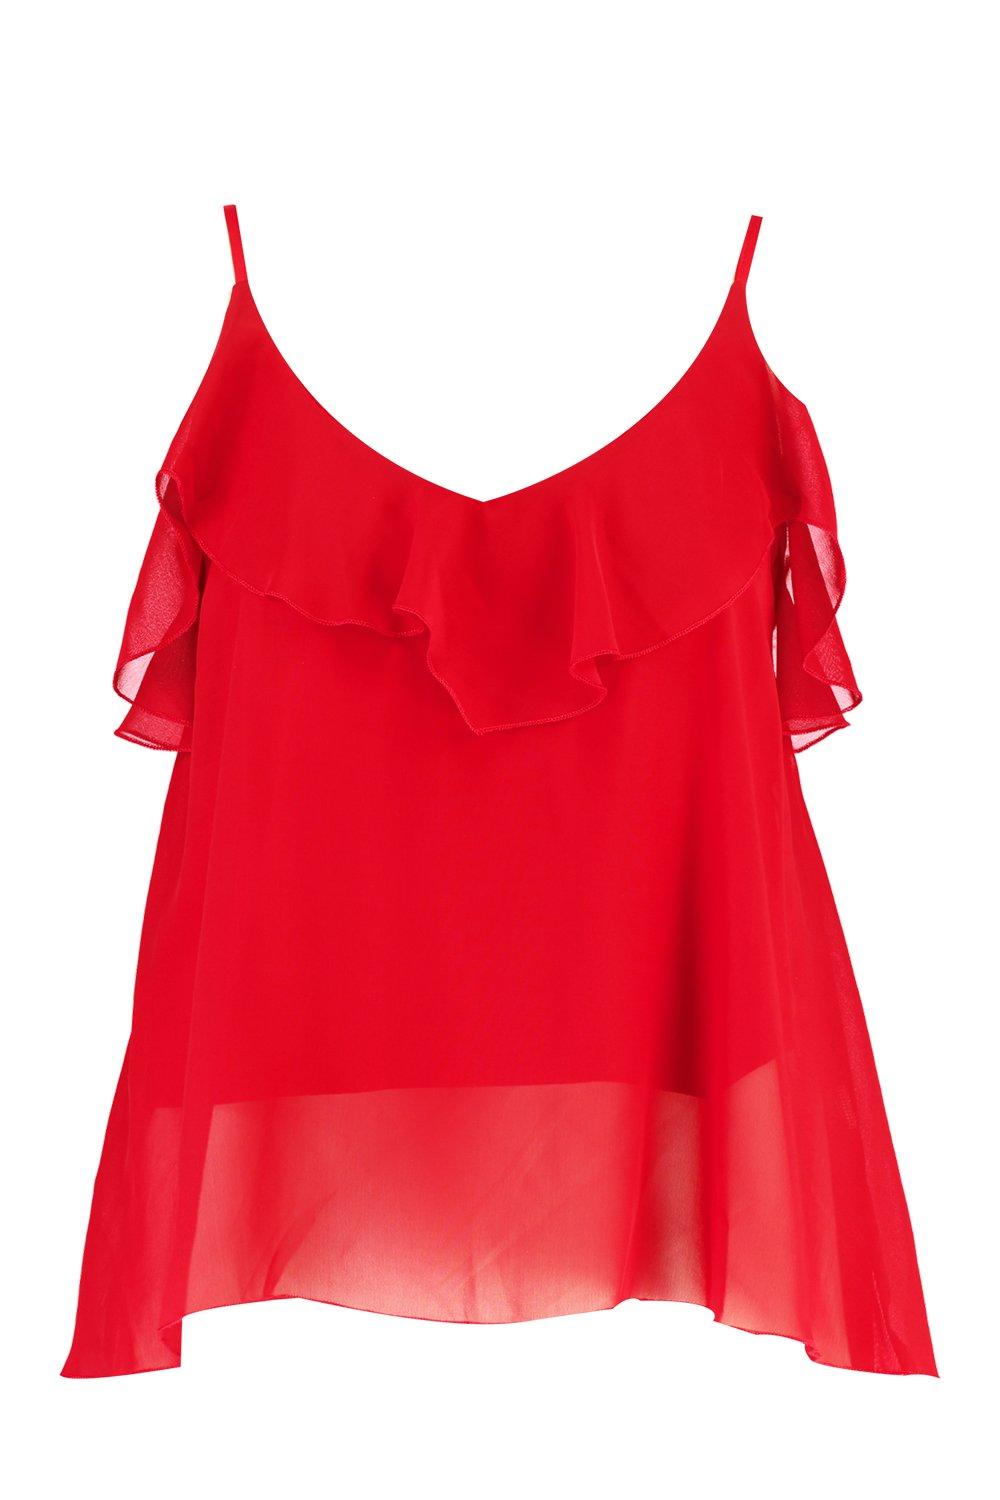 Cami Detail Swing Plus red Ruffle qBaHWFA